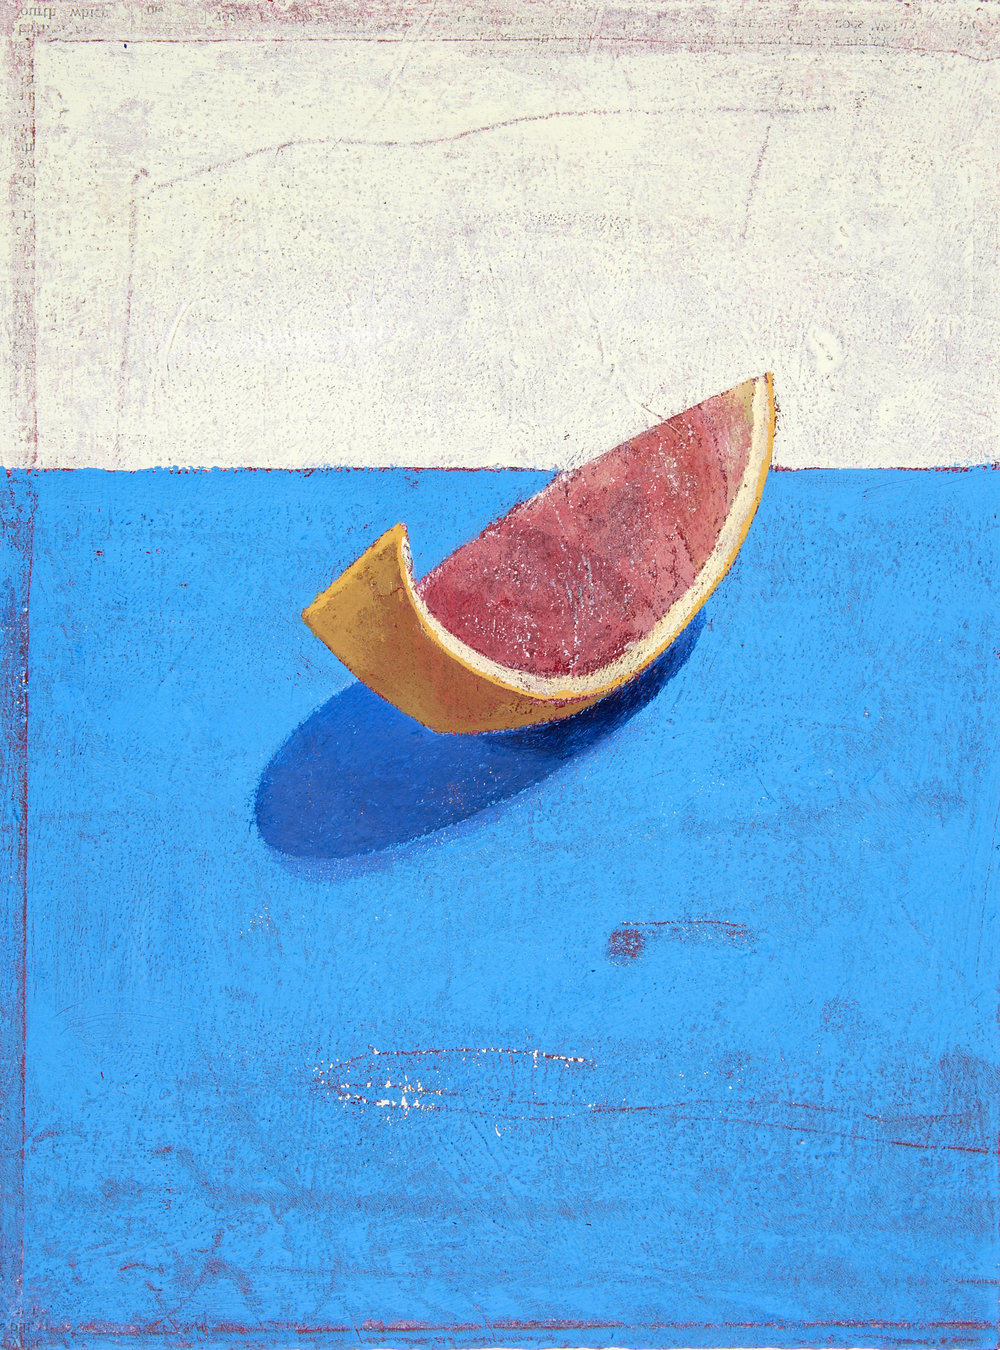 David Lyon Art - Blue Orange Peel - 150dpi.jpg